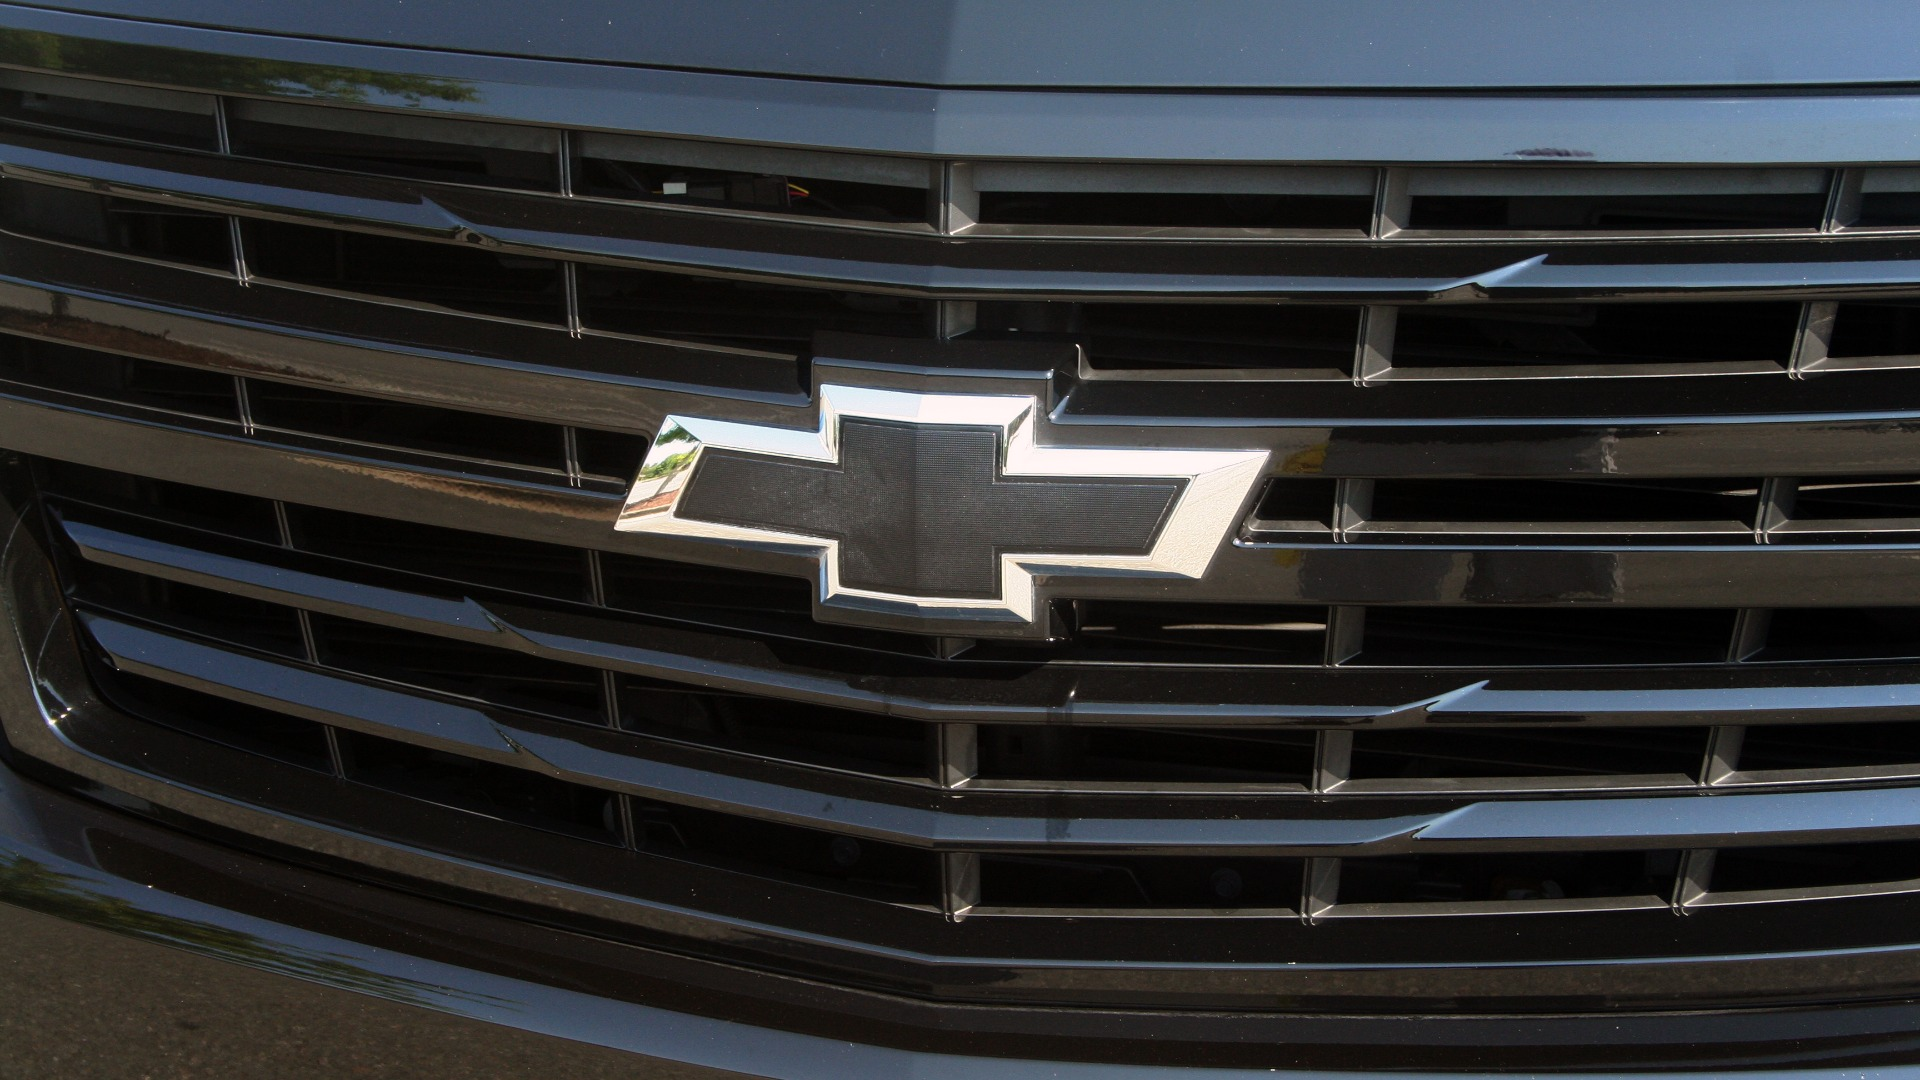 Used 2018 Chevrolet TAHOE PREMIER RST / 4X4 / NAV / BOSE / SUNROOF / 3-ROW / REARVIEW for sale $65,995 at Formula Imports in Charlotte NC 28227 15